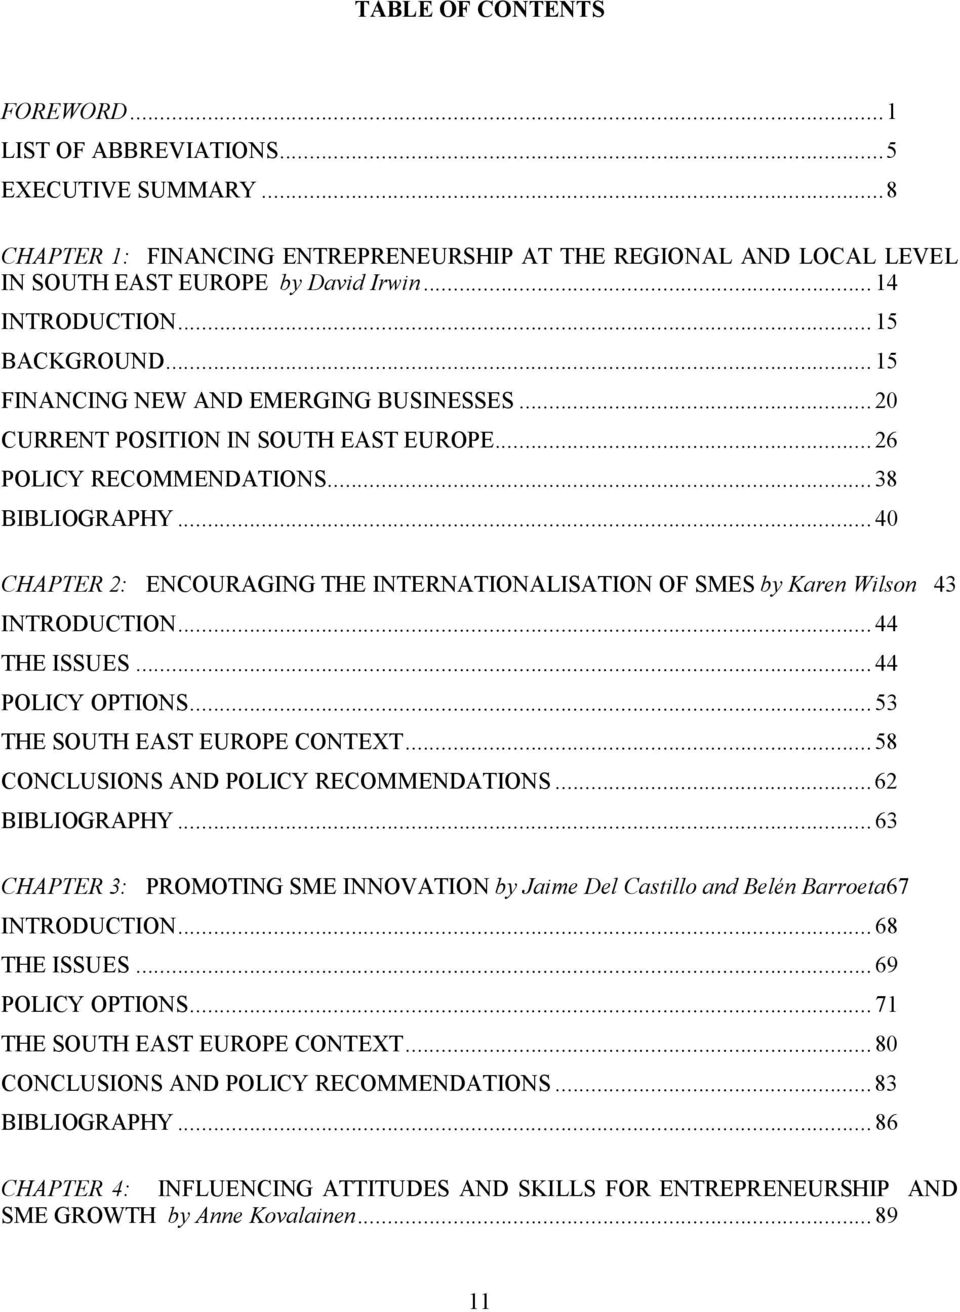 ..40 CHAPTER 2: ENCOURAGING THE INTERNATIONALISATION OF SMES by Karen Wilson 43 INTRODUCTION...44 THE ISSUES... 44 POLICY OPTIONS...53 THE SOUTH EAST EUROPE CONTEXT.